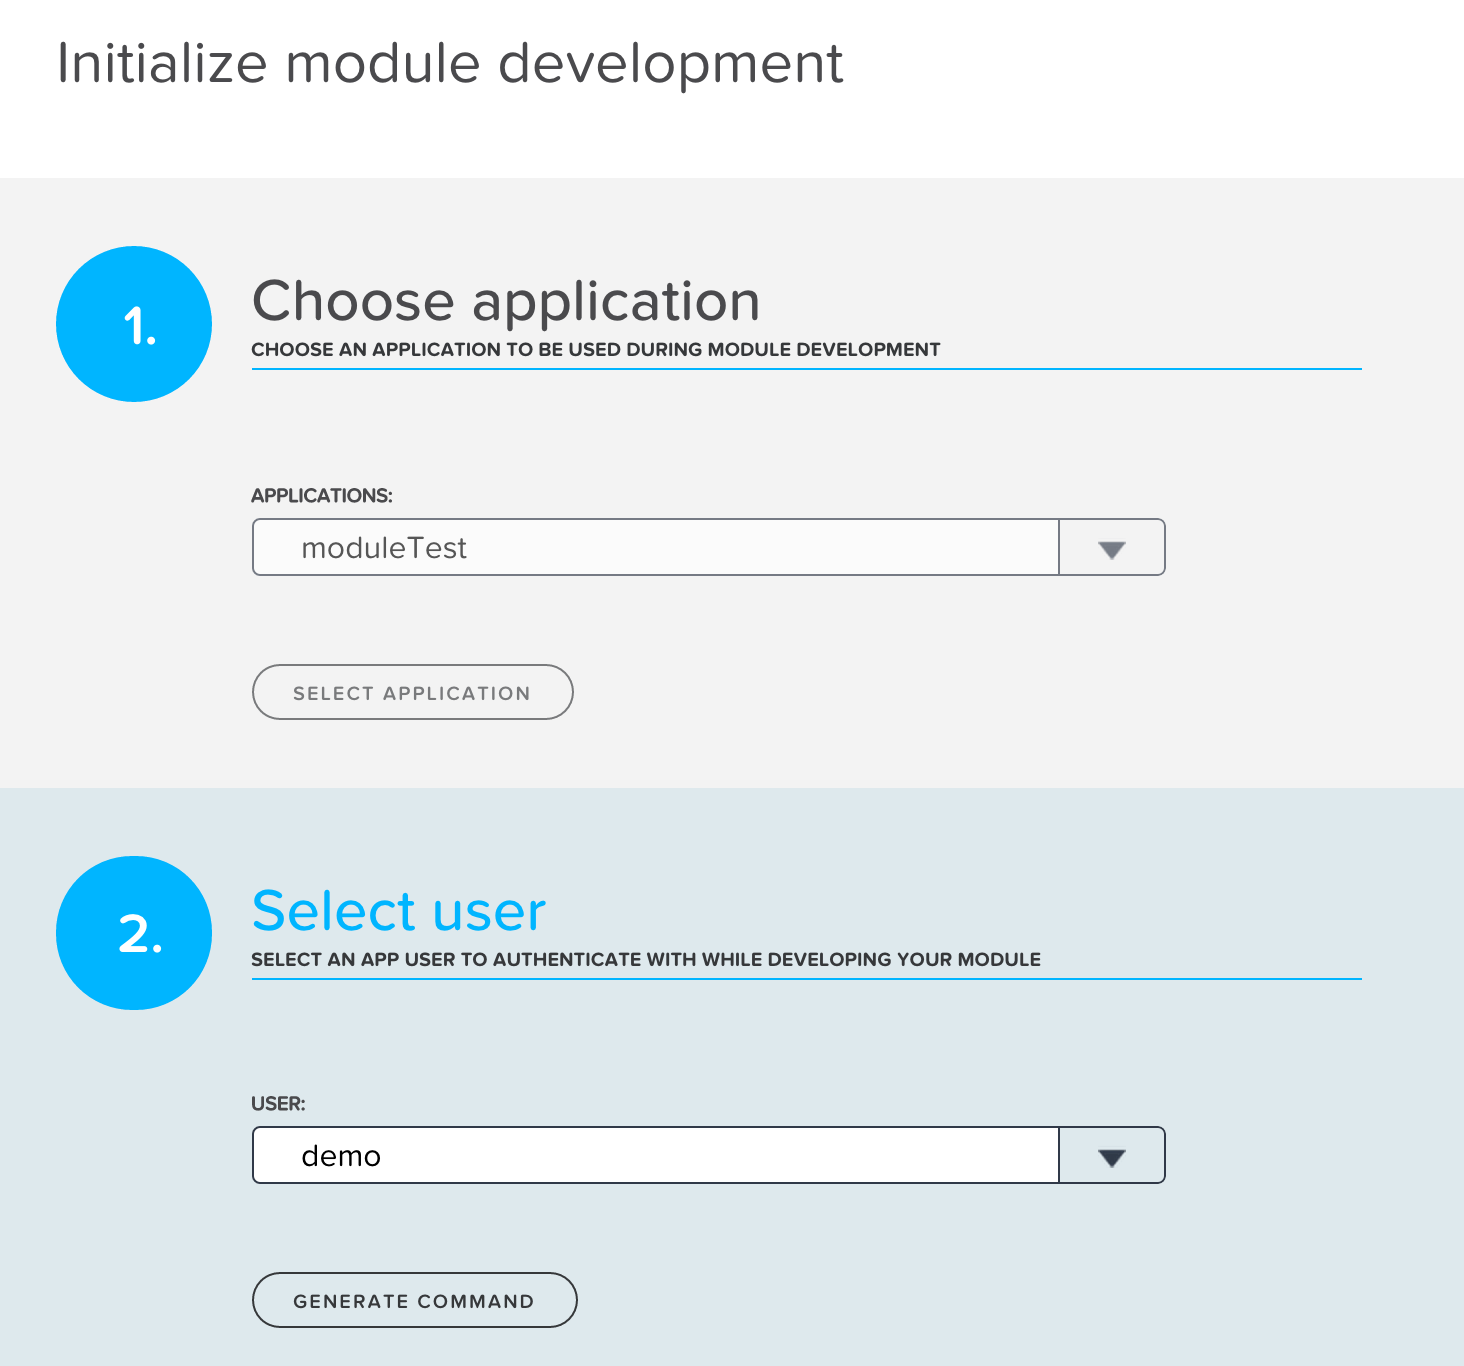 The module connection wizard will ask for an app and user to use as the development module's configuration